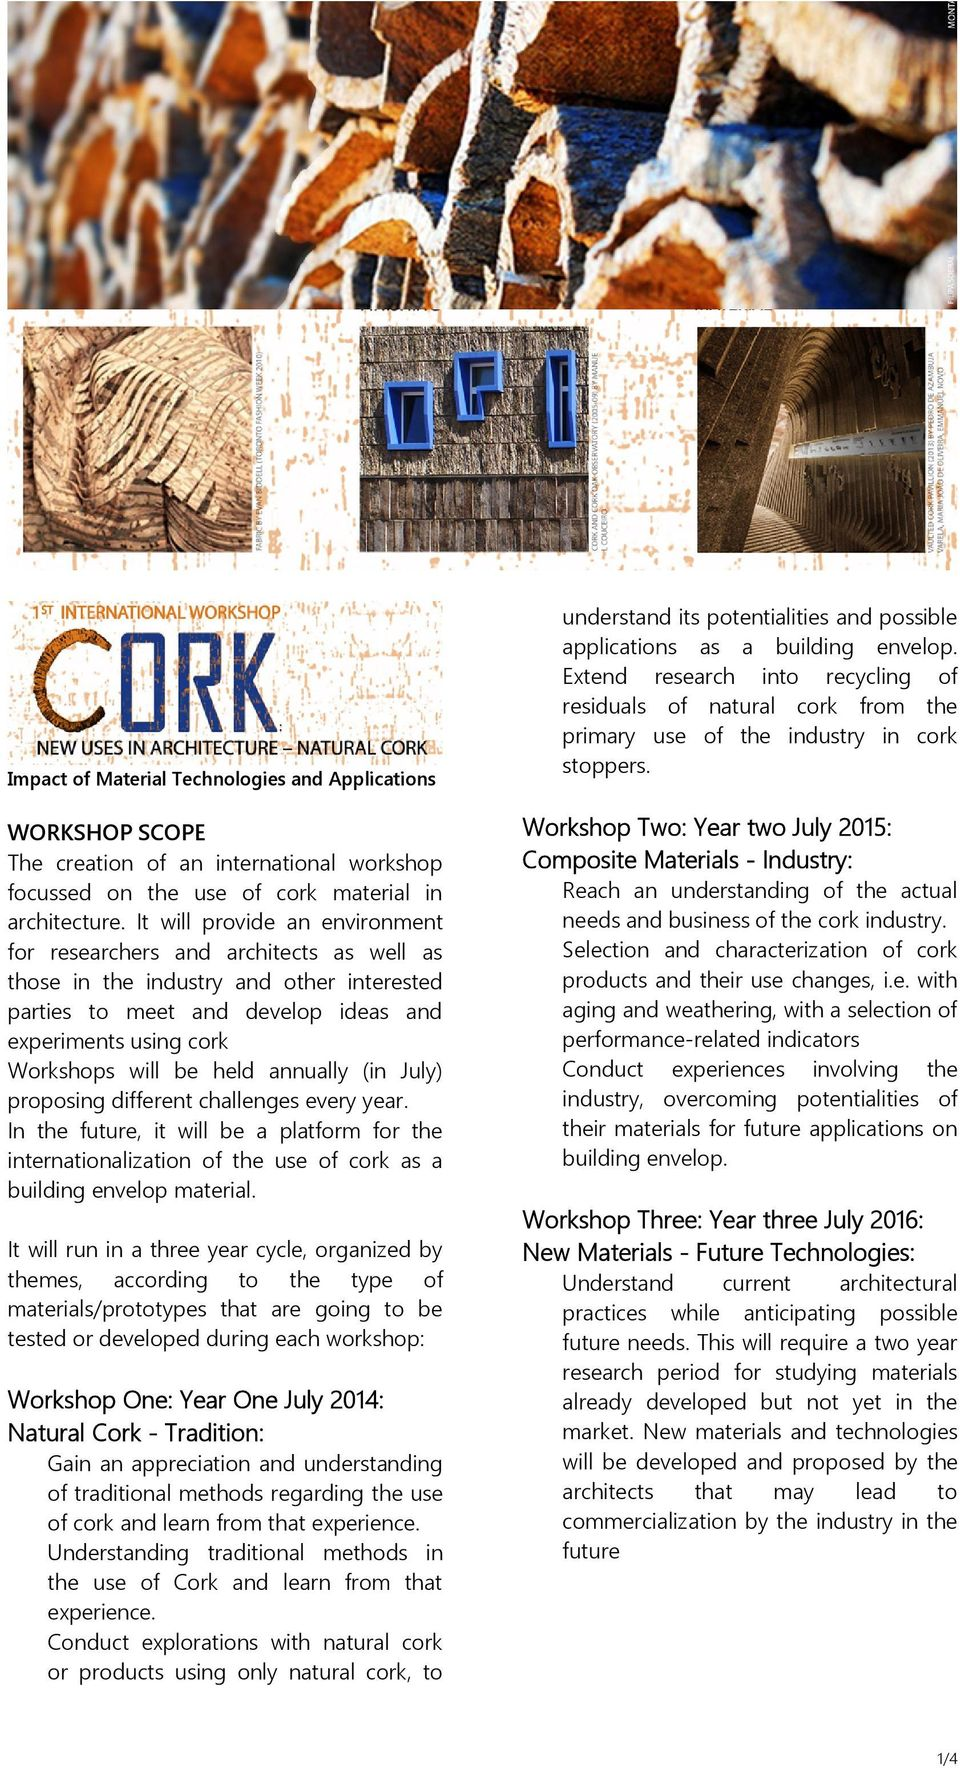 annually (in July) proposing different challenges every year. In the future, it will be a platform for the internationalization of the use of cork as a building envelop material.